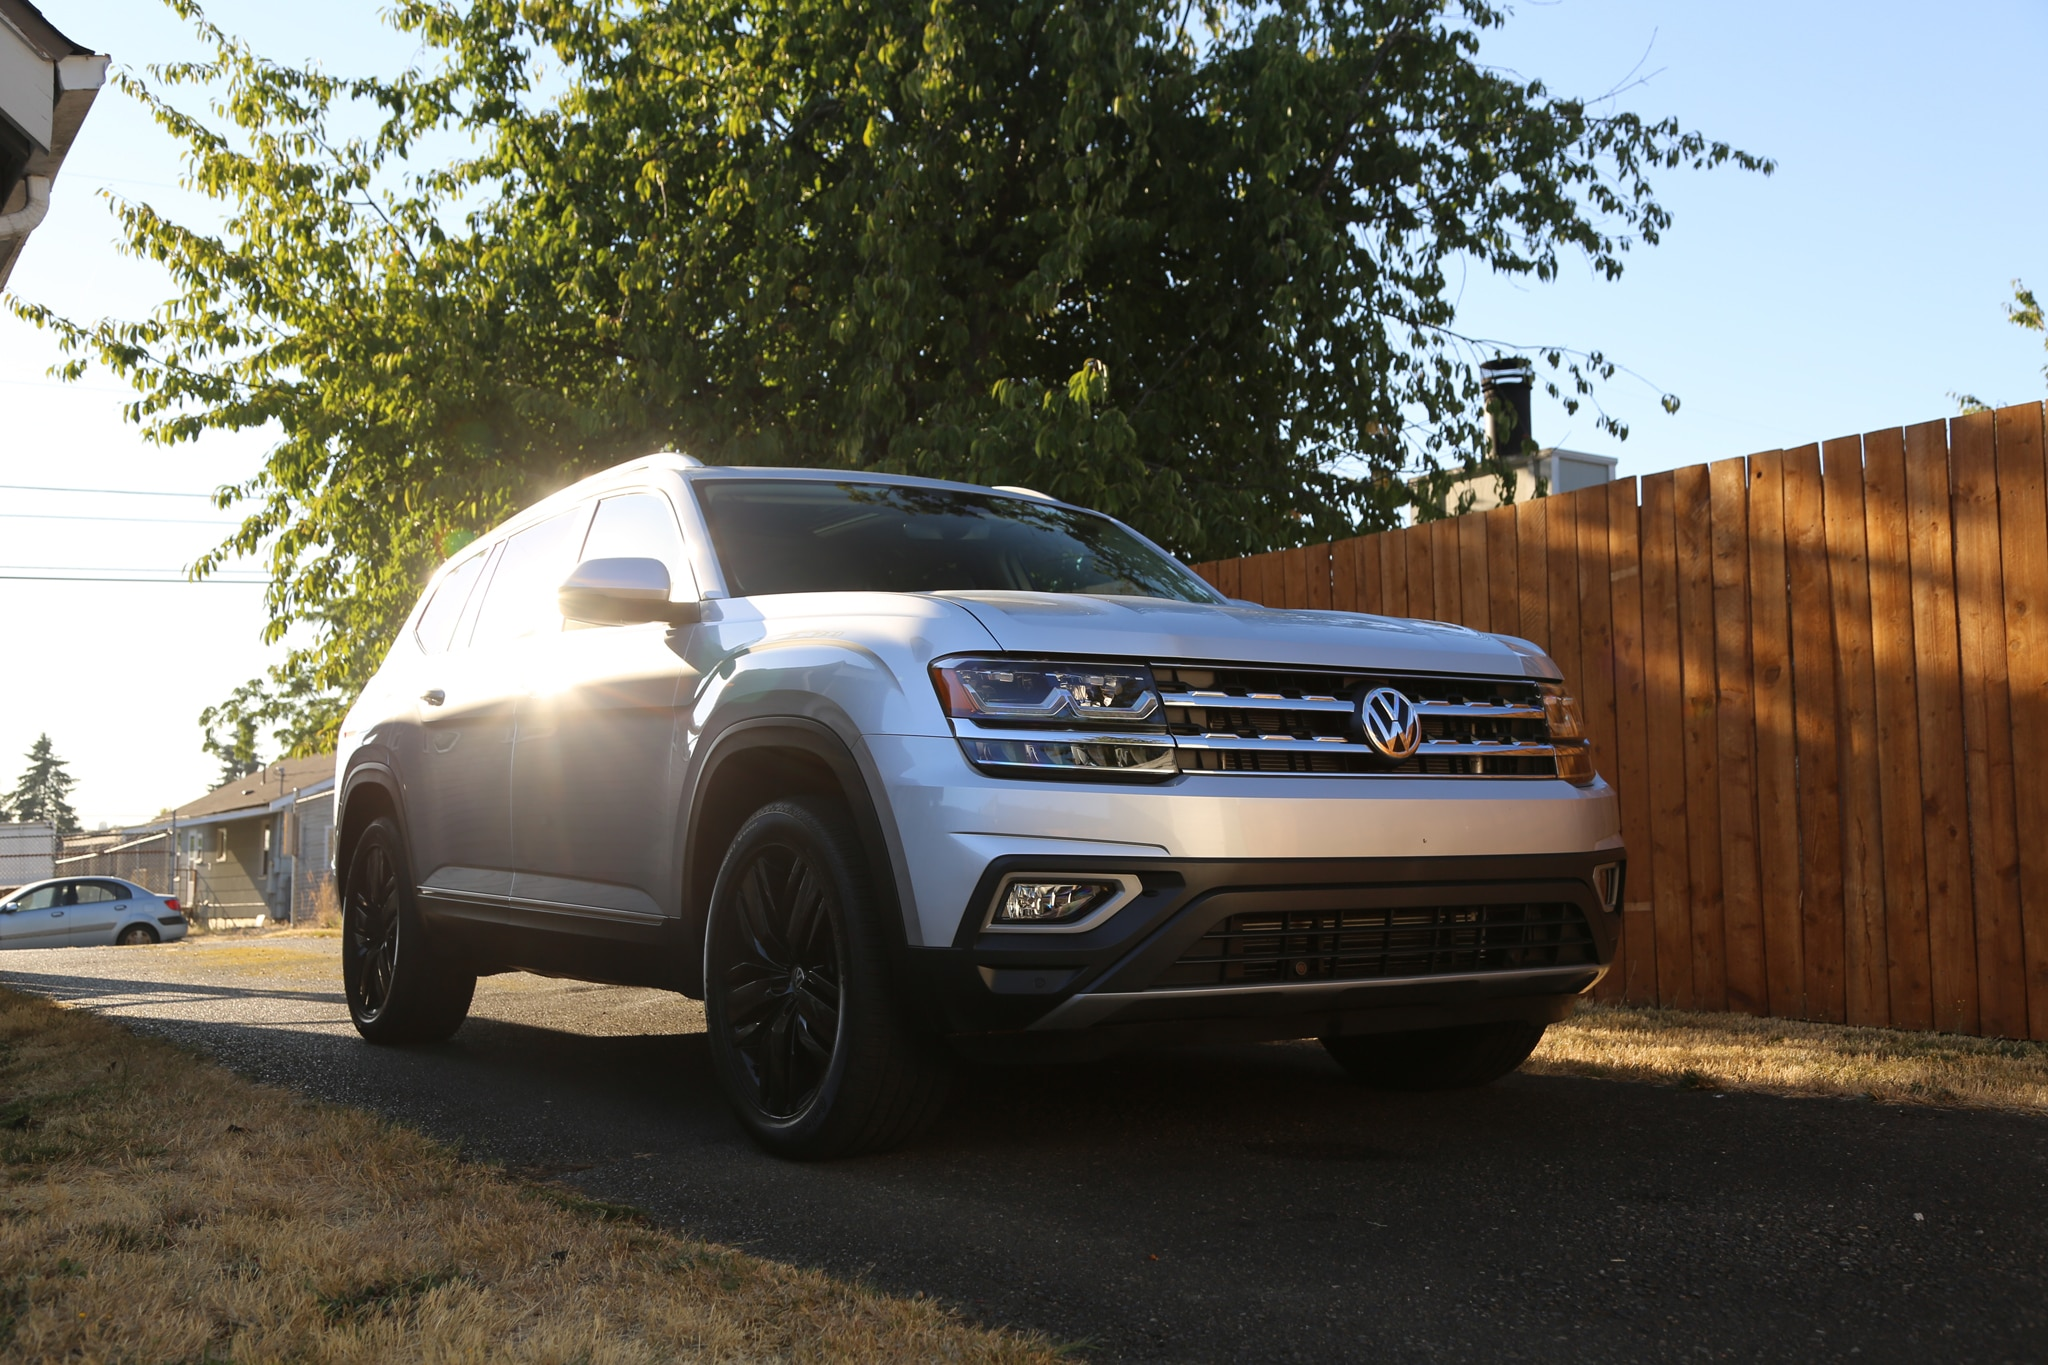 VW Atlas V6 SEL 4Motion Amag Crops 4